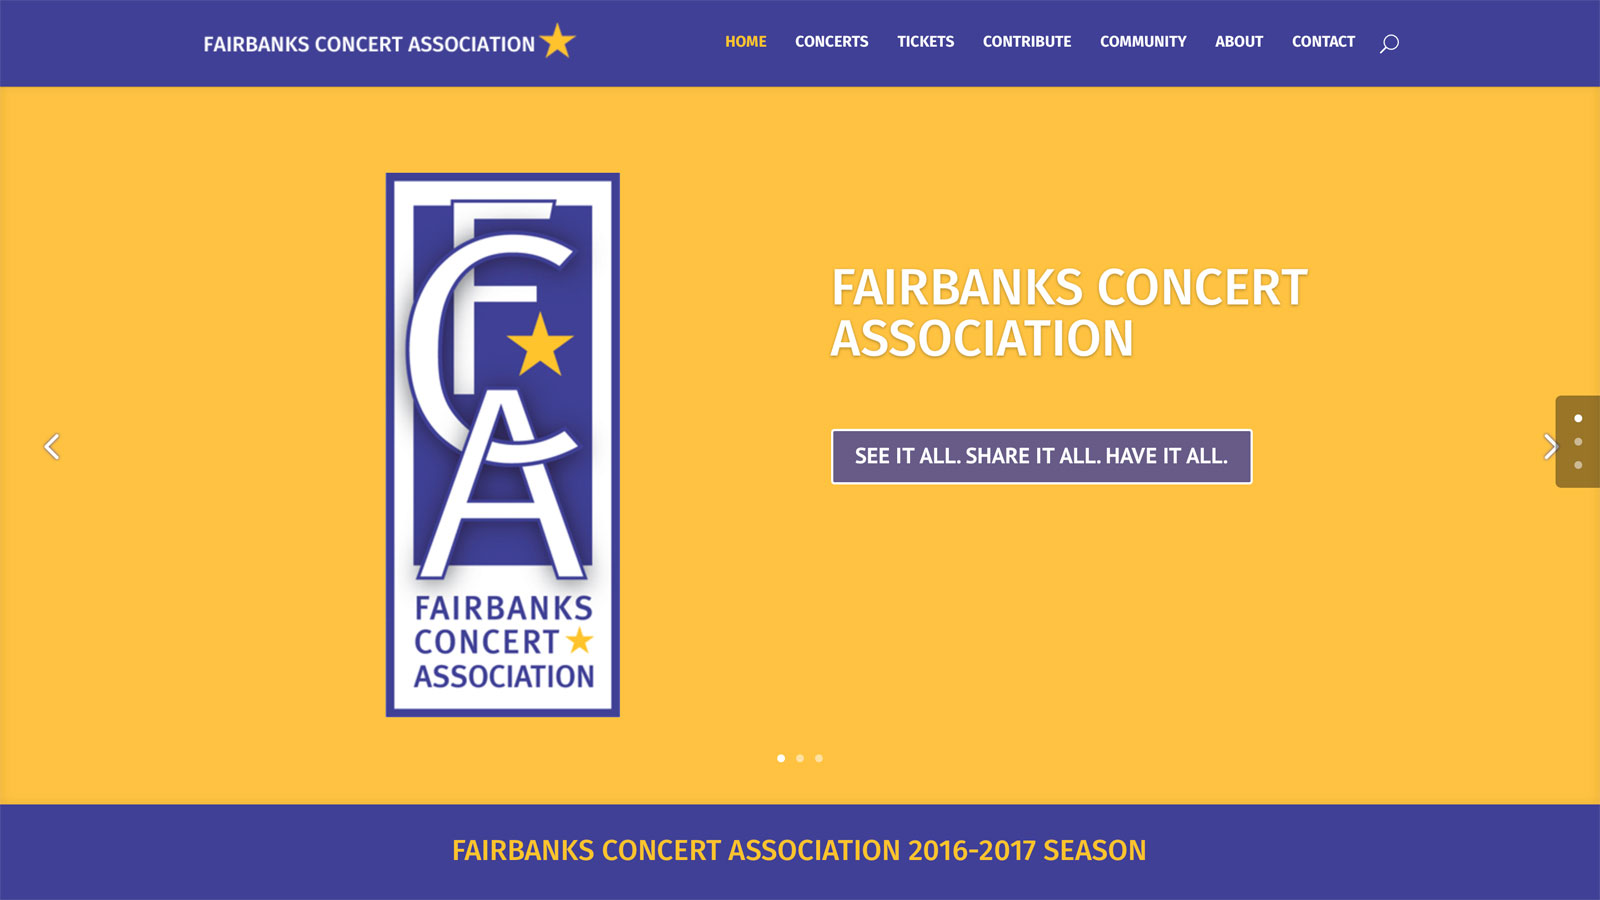 Fairbanks Concert Association